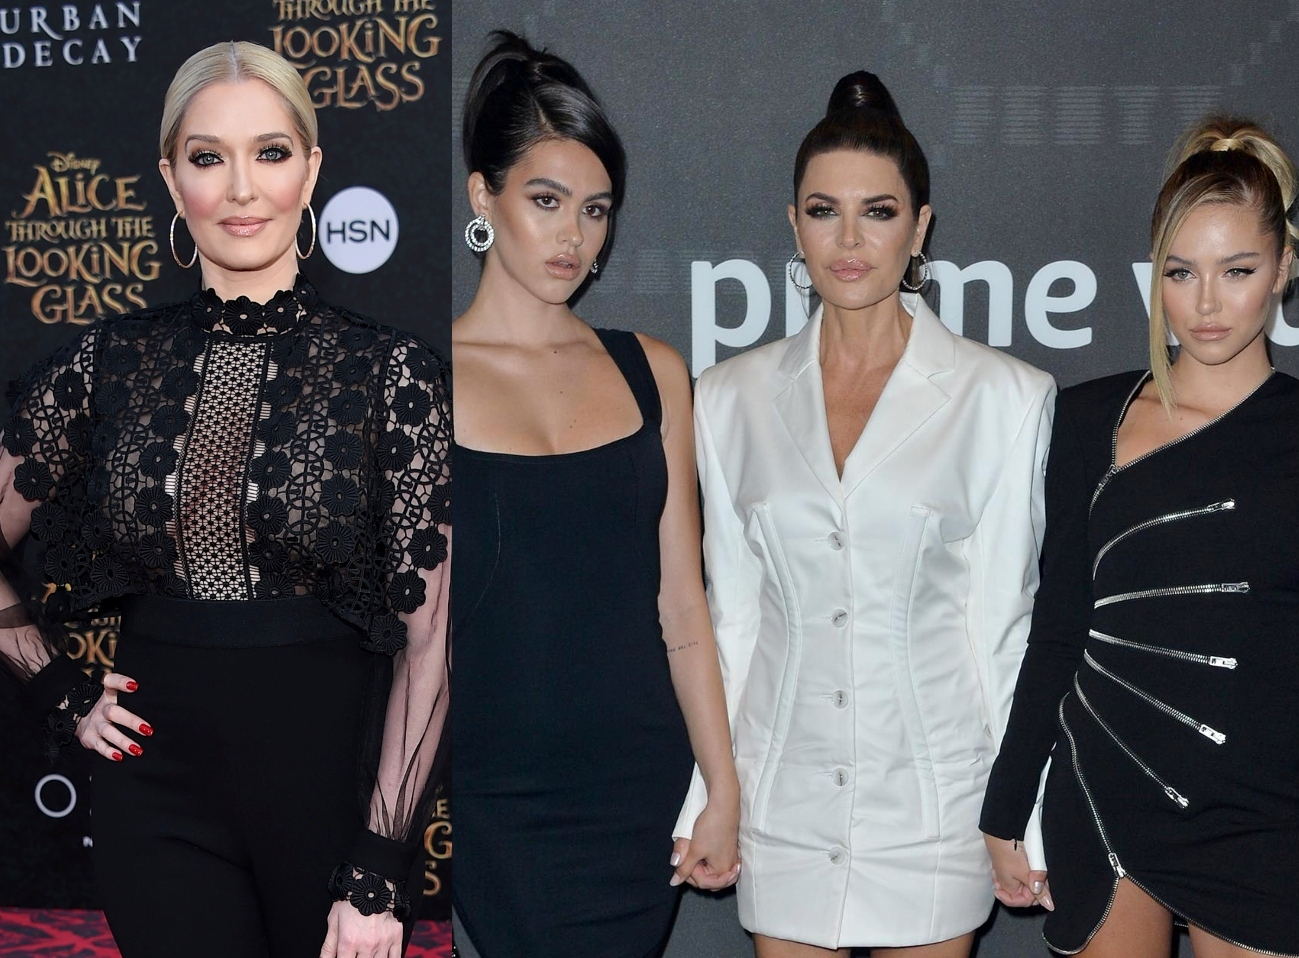 RHOBH Star Erika Jayne Denies $156k Payment to Rinna's Daughters' Clothing Company and Mocks Attorney Investigating Her in Instagram Comment